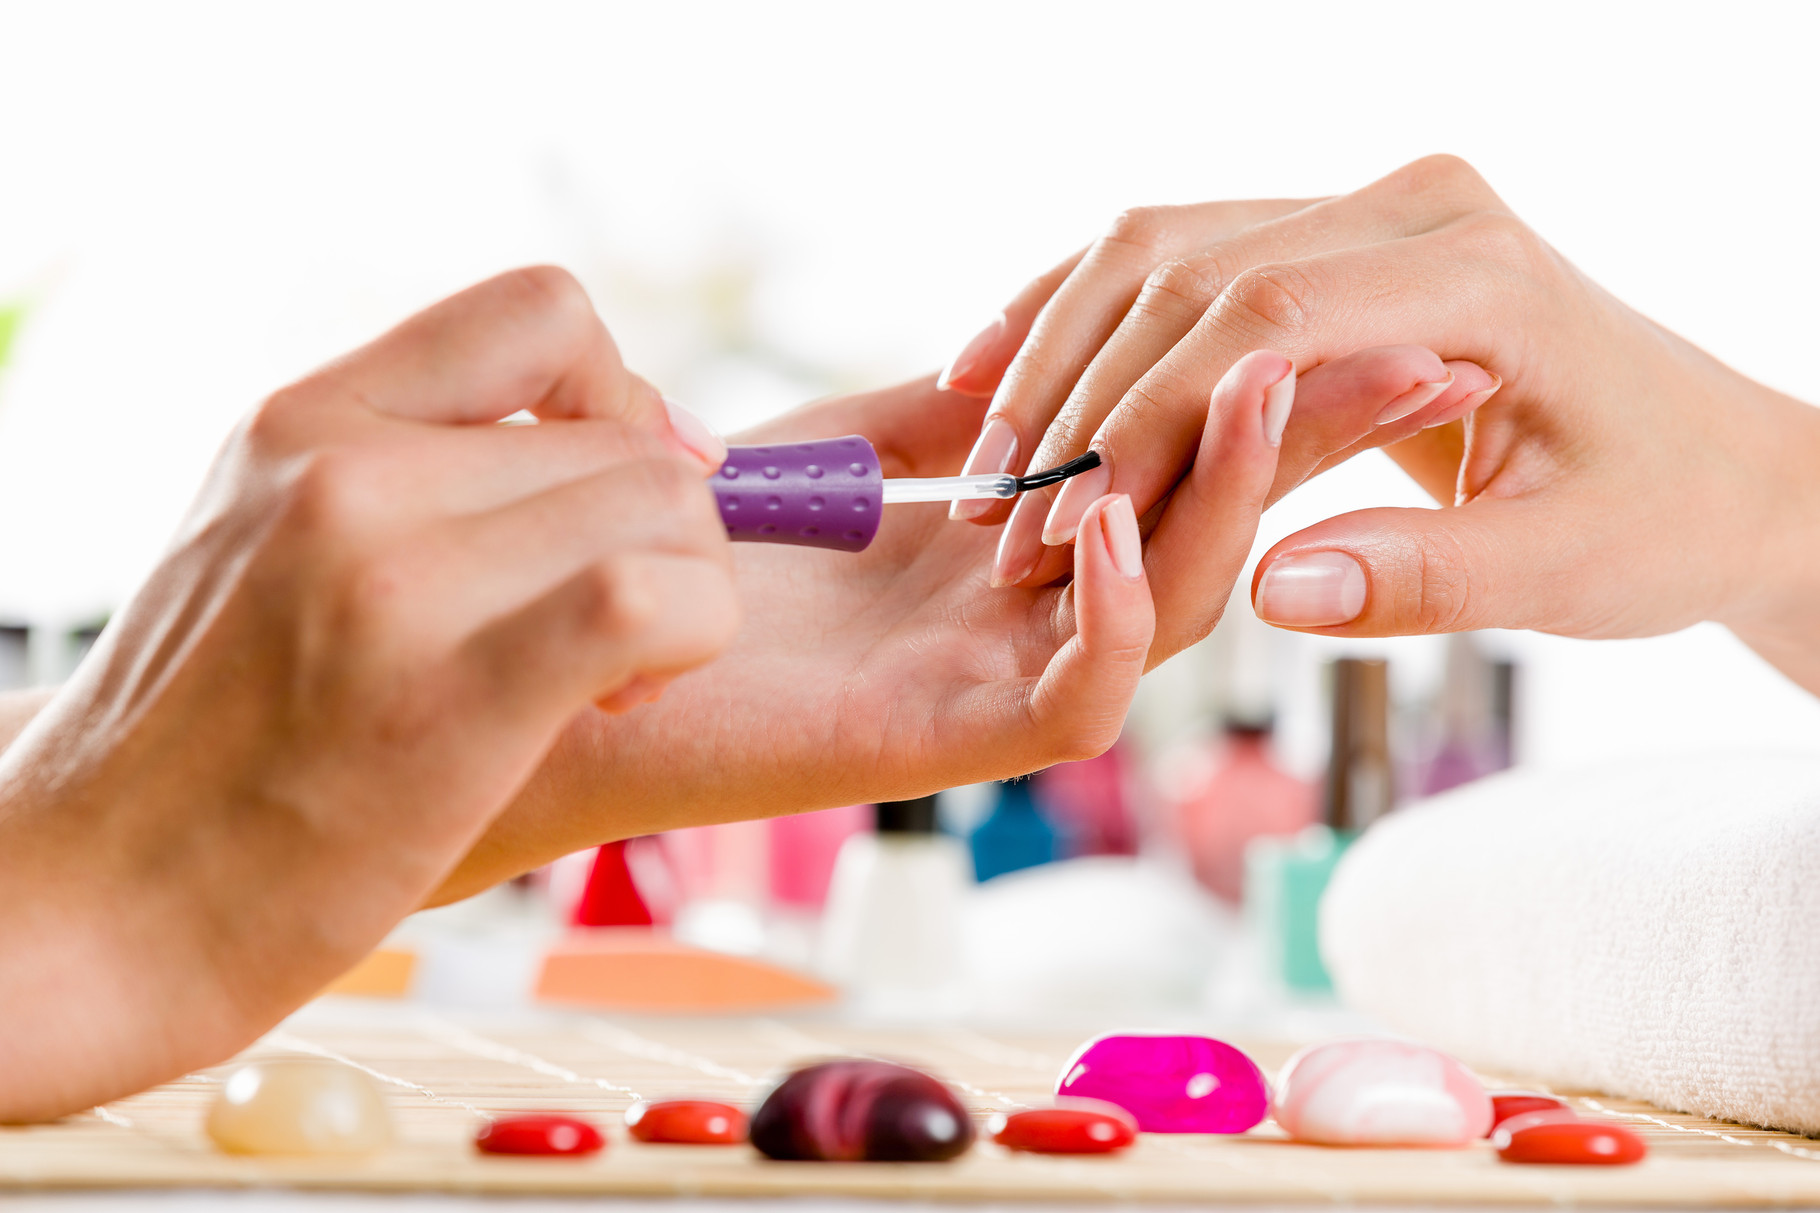 Nail & Beauty Clinic, Altrincham, Cheshire